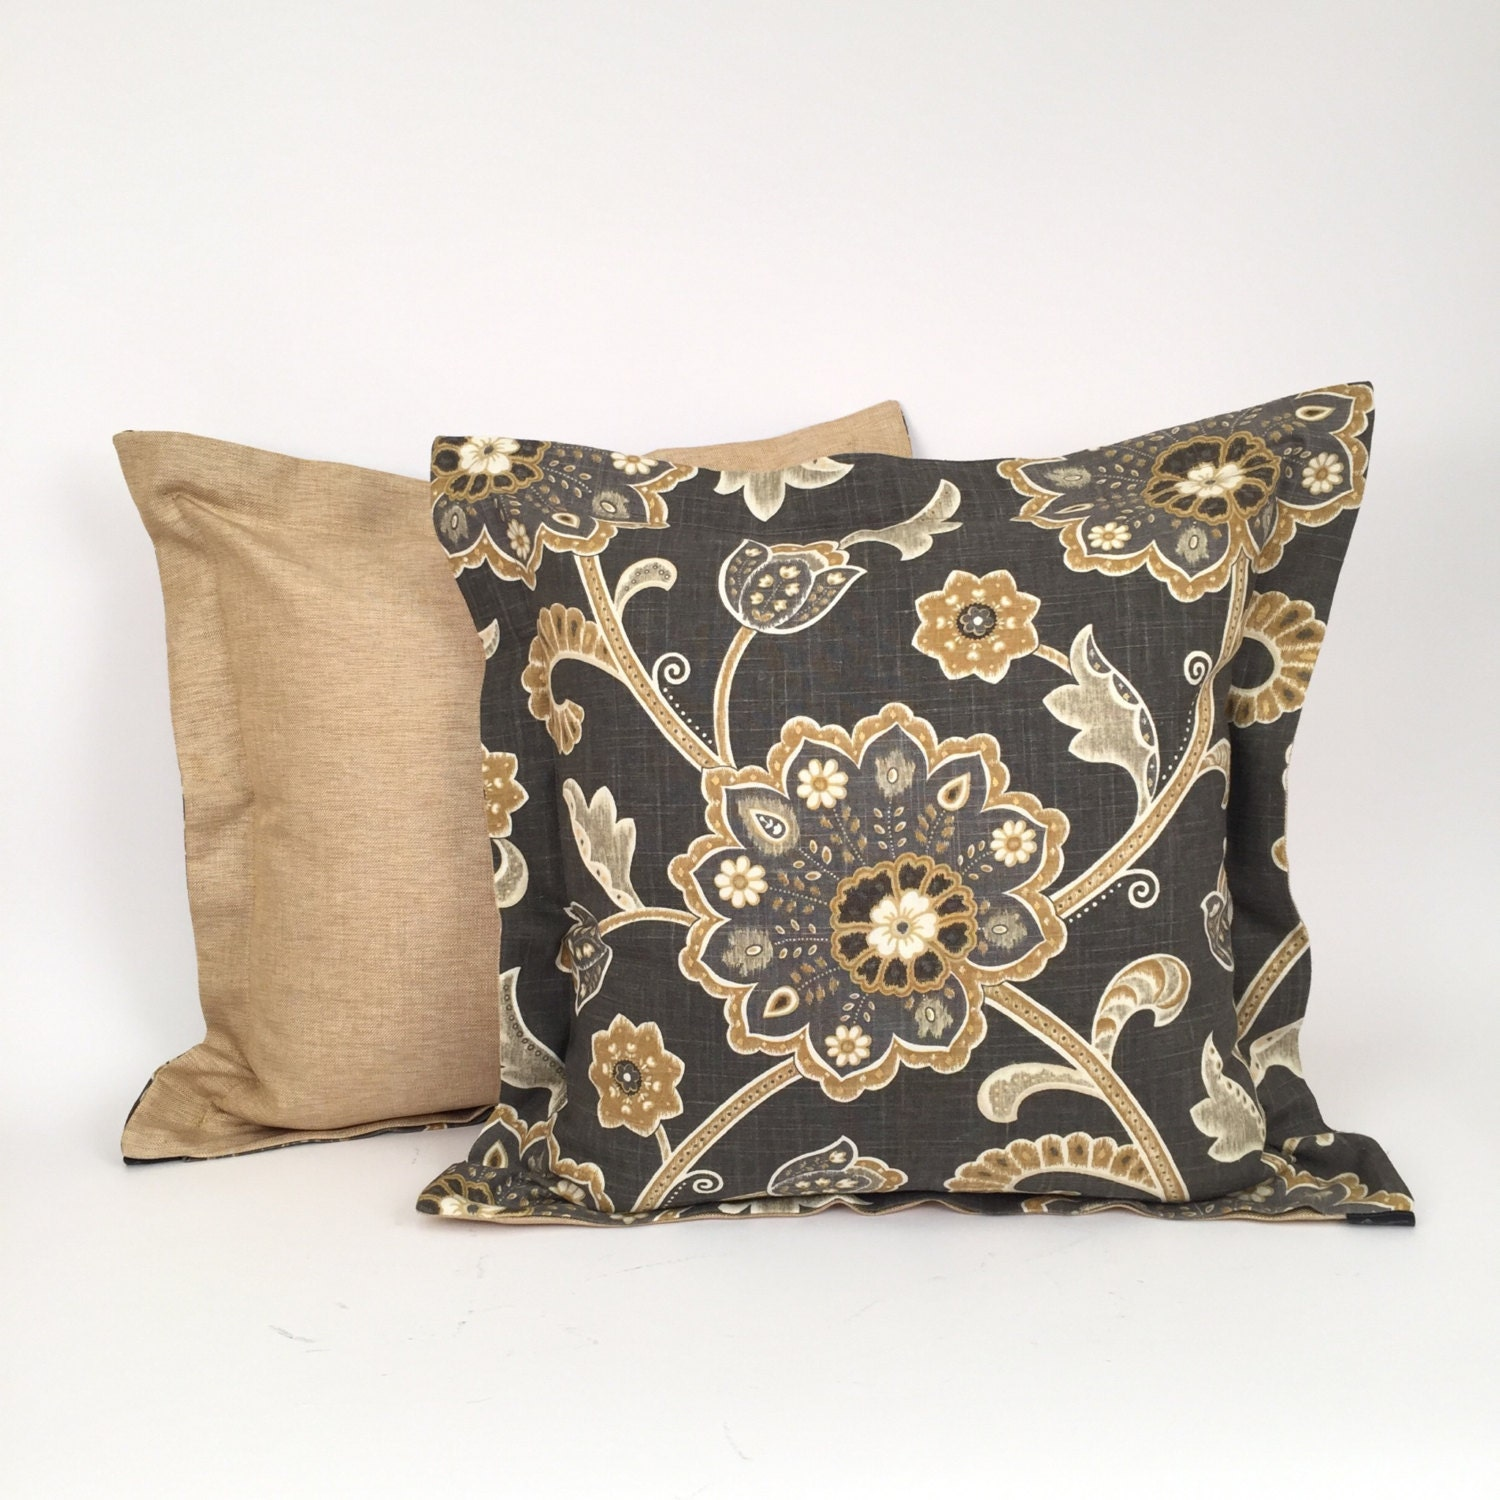 Designer Luxury Throw Pillow Taupe And Gold Floral Design. Custom Home Decor. Room Rental Lease Agreement. Craft Room Organization Ideas. Room For Rent In San Francisco. Beach Themed Living Rooms. Side Chairs With Arms For Living Room. Video Game Room Furniture. Oversized Fork And Spoon Wall Decor